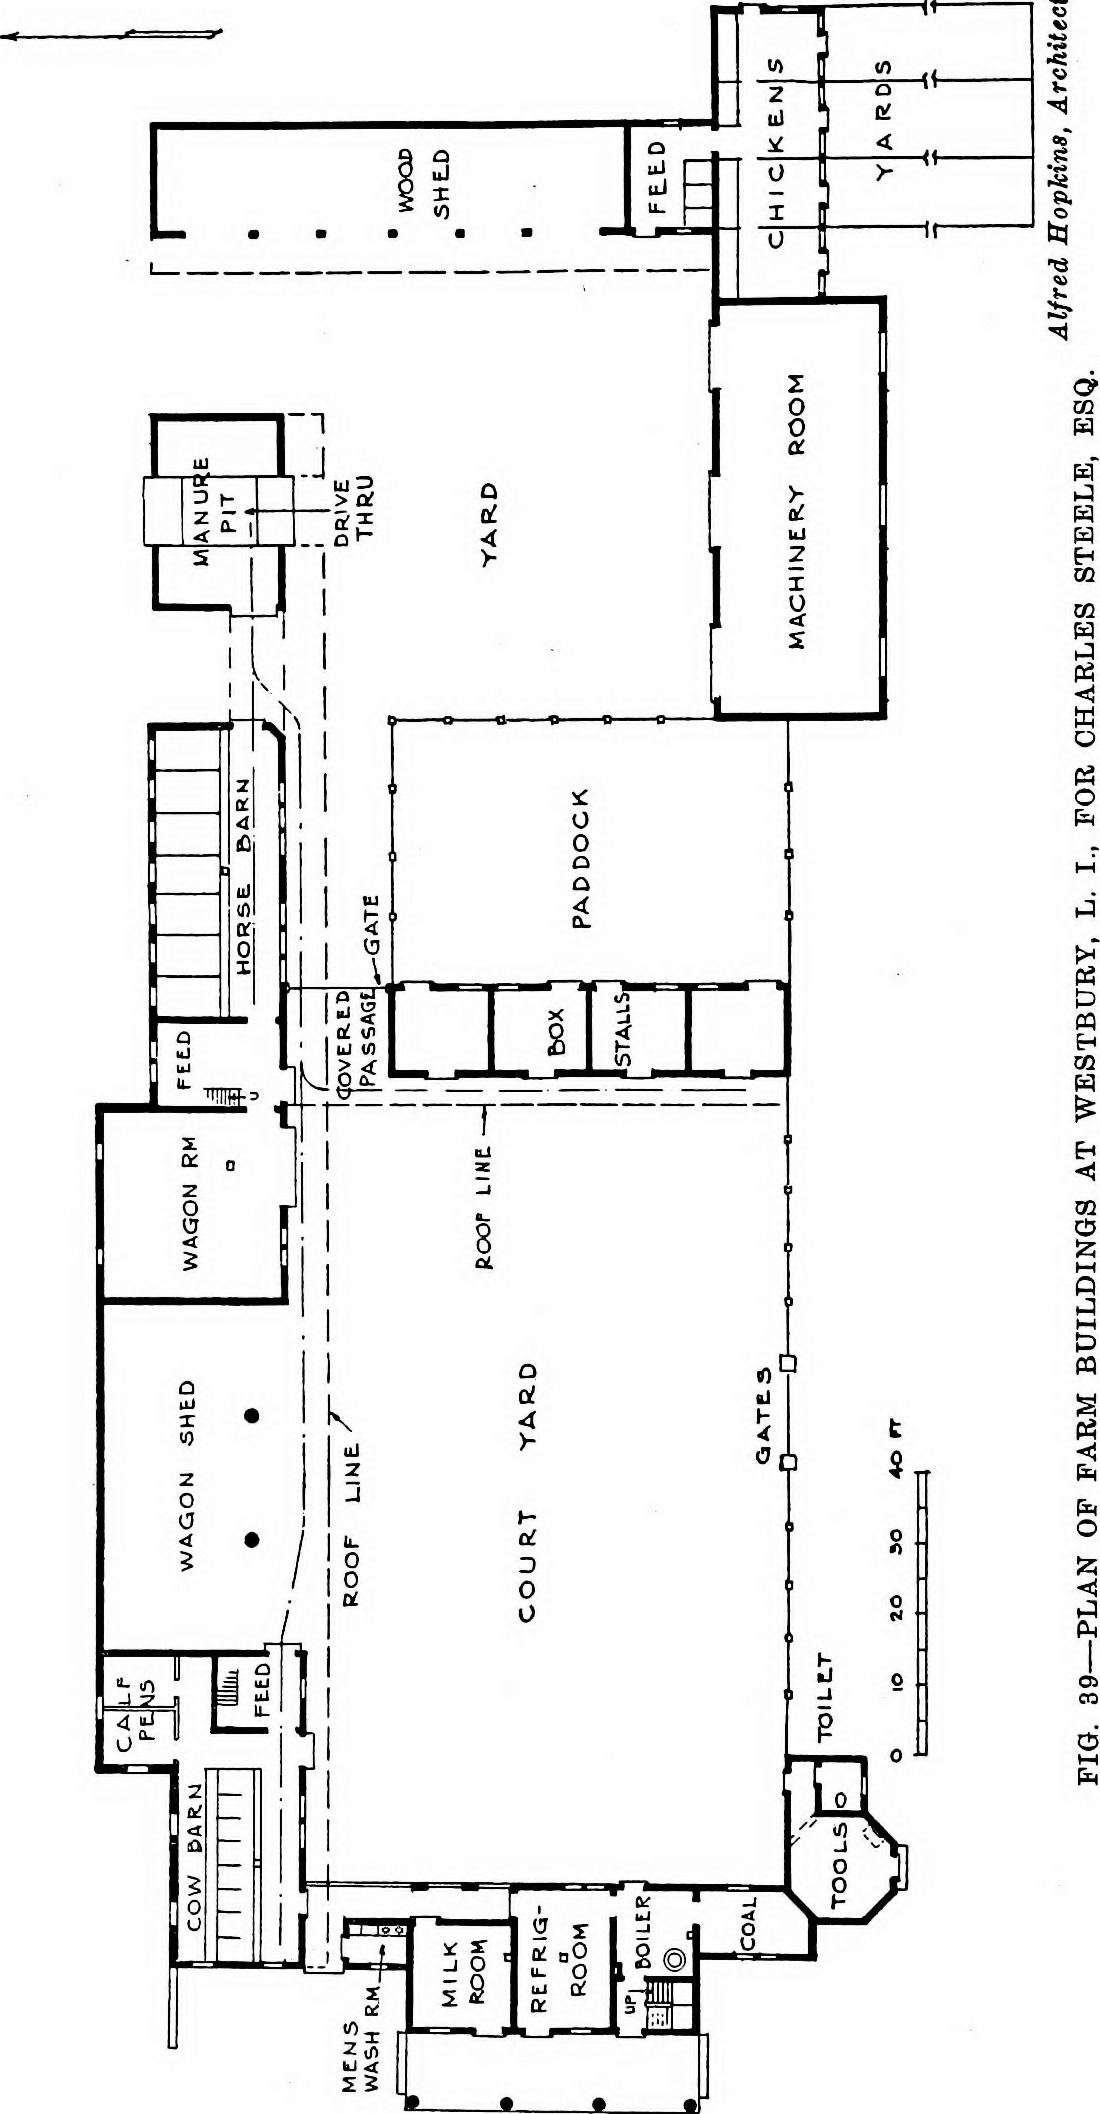 Horse Barn House Plans Inspirational File Modern Farm Buildings Being Suggestions for the Most